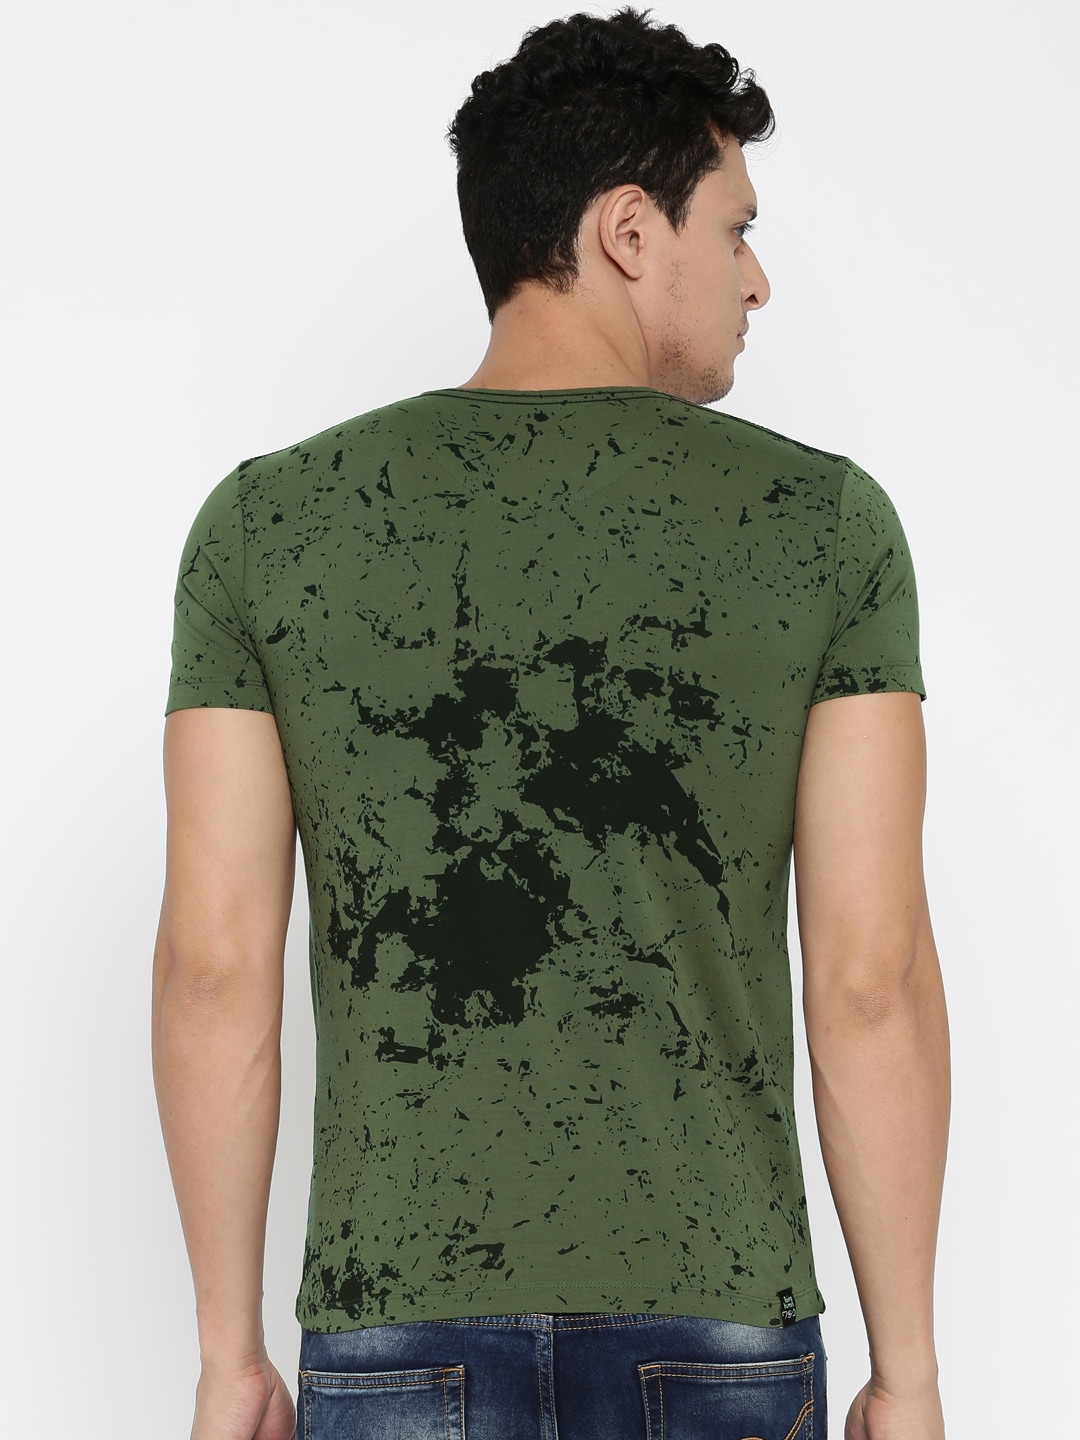 Design your own t shirt india cash on delivery - Design Your Own T Shirt India Cash On Delivery 14